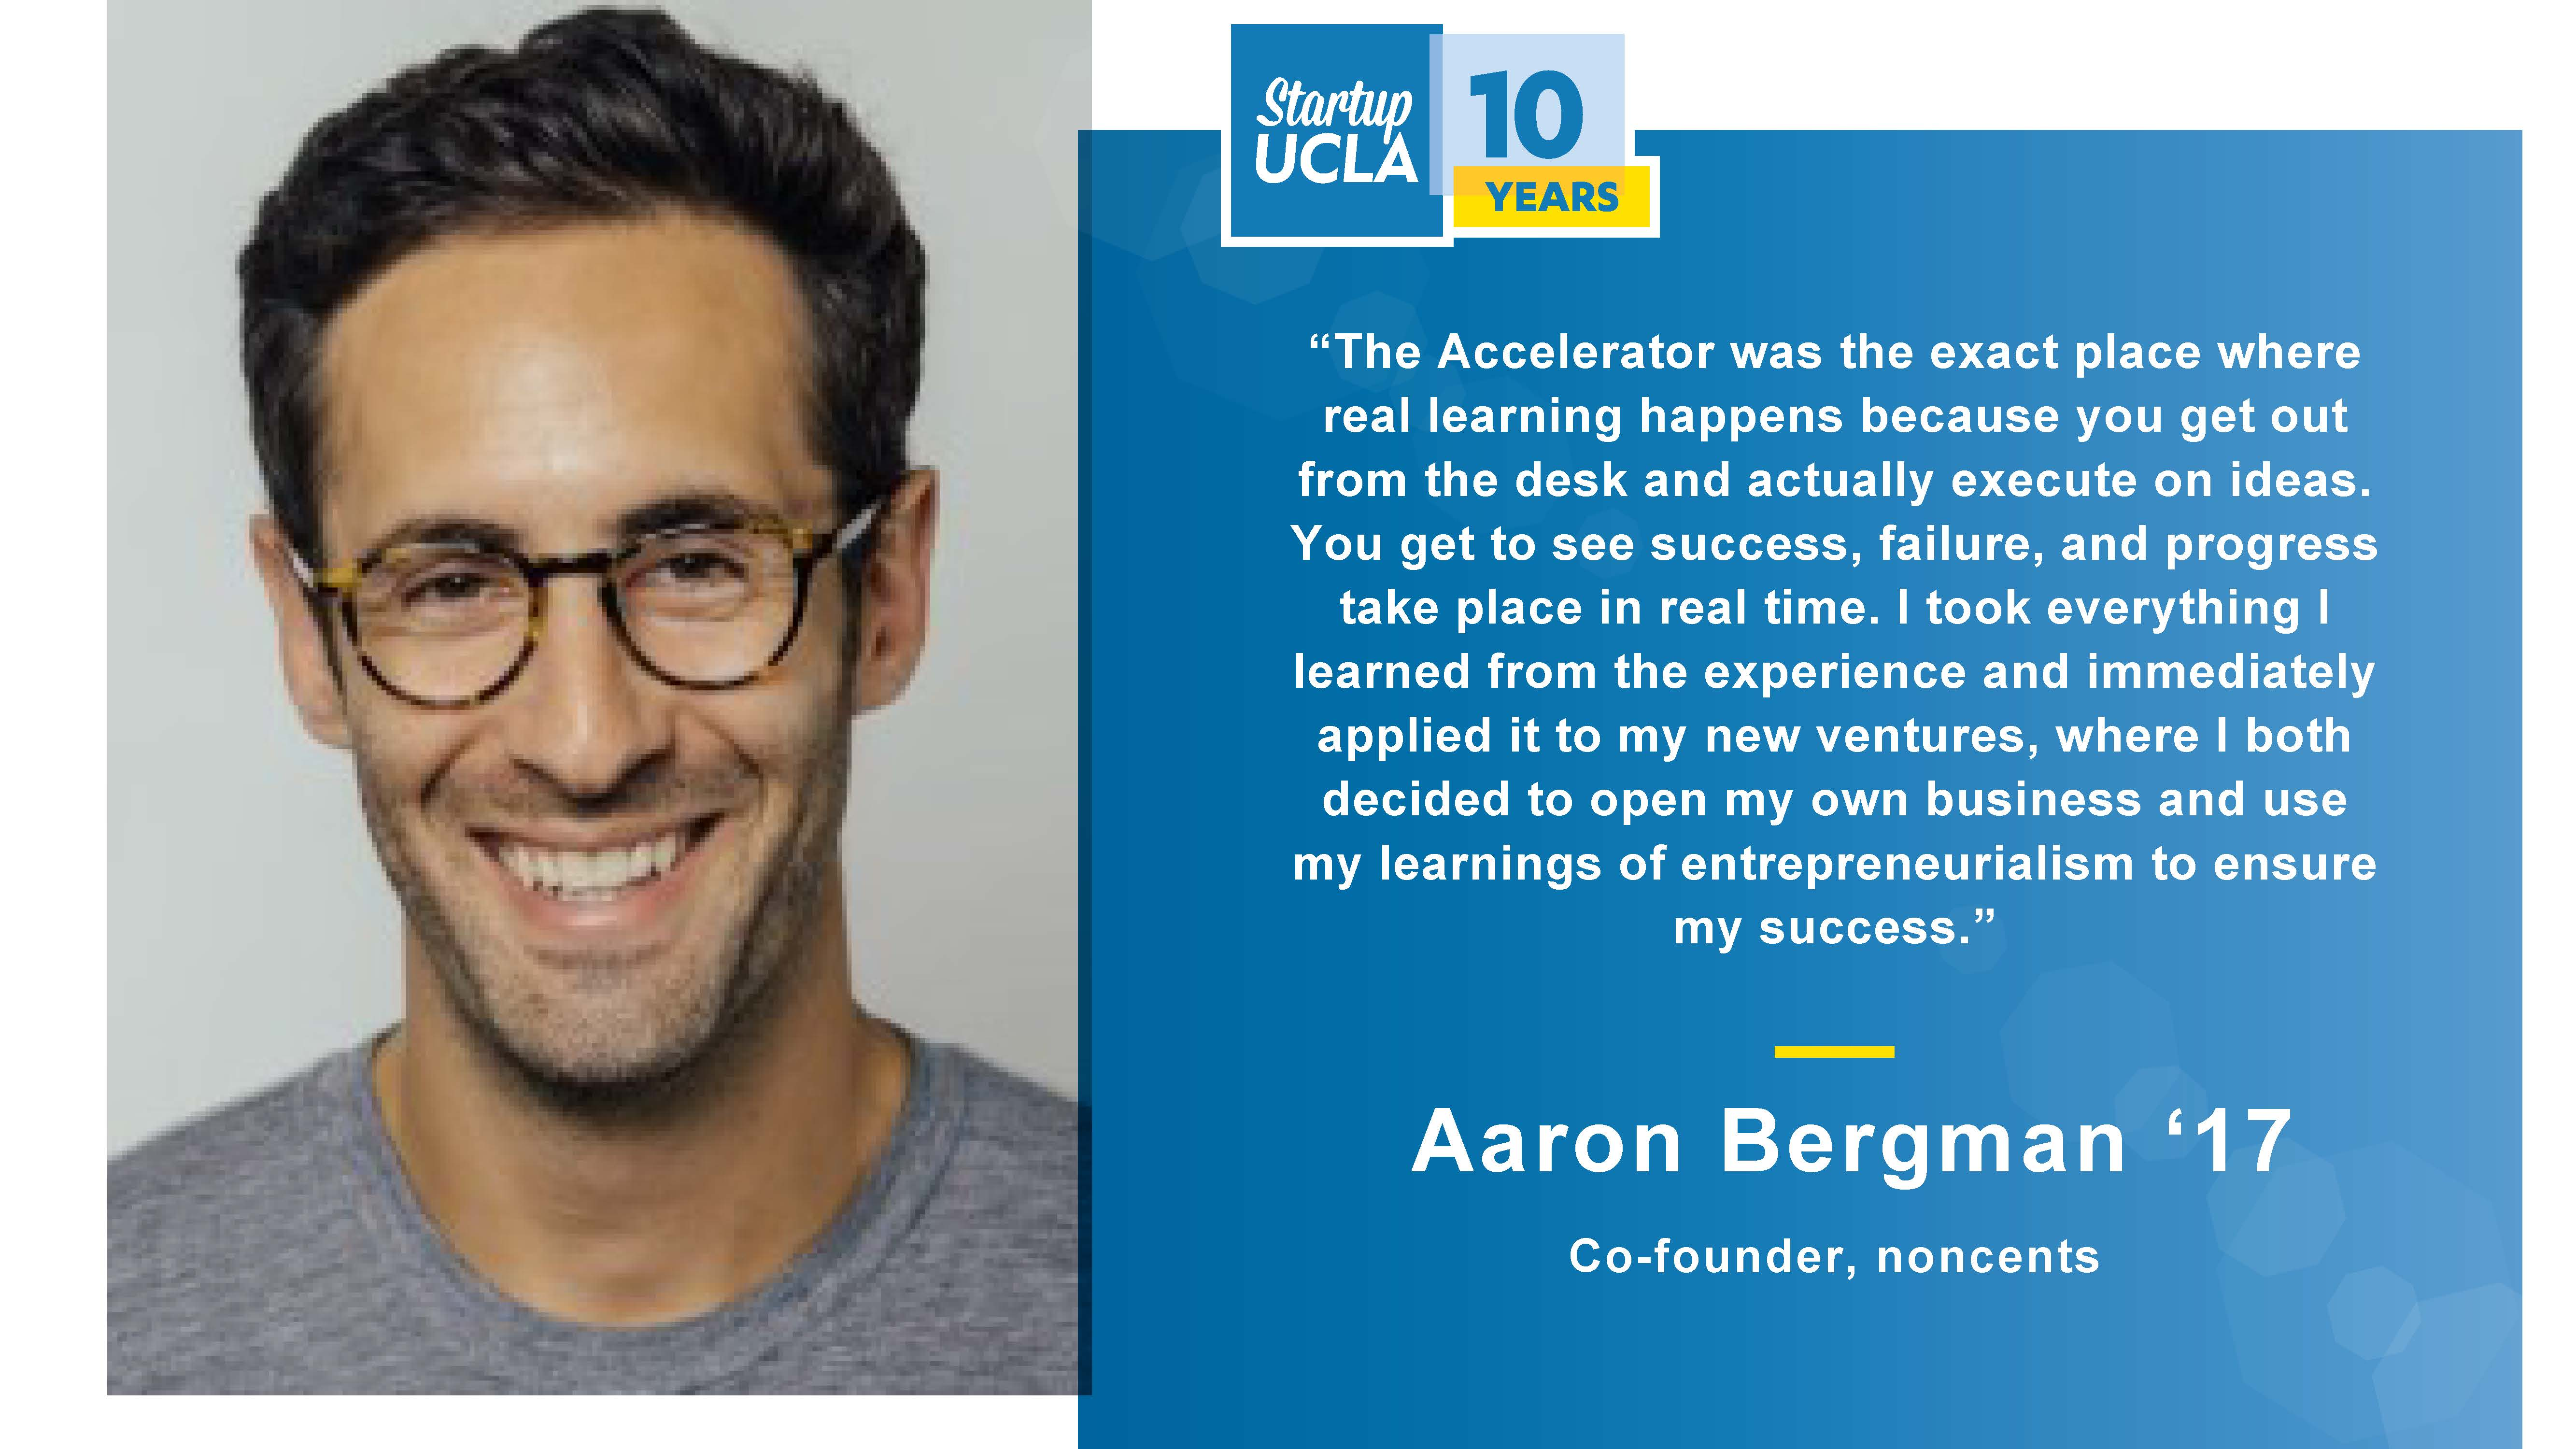 """""""The Accelerator was the exact place where real learning happens because you get out from the desk and actually execute on ideas. You get to see success, failure, and progress take place in real time. I took everything I learned from the experience and immediately applied it to my new ventures, where I both decided to open my own business and use my learnings of entrepreneurialism to ensure my success."""" Aaron Bergman '17, Co-founder, noncents"""